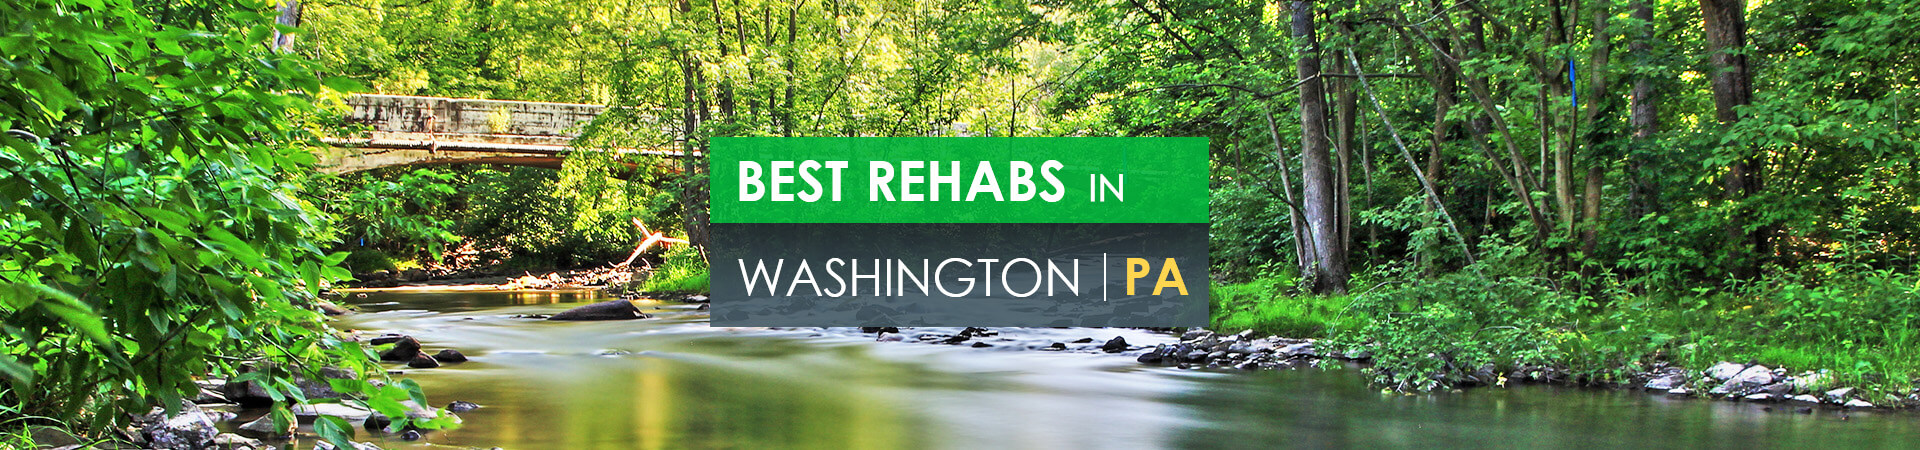 Best rehabs in Washington, PA